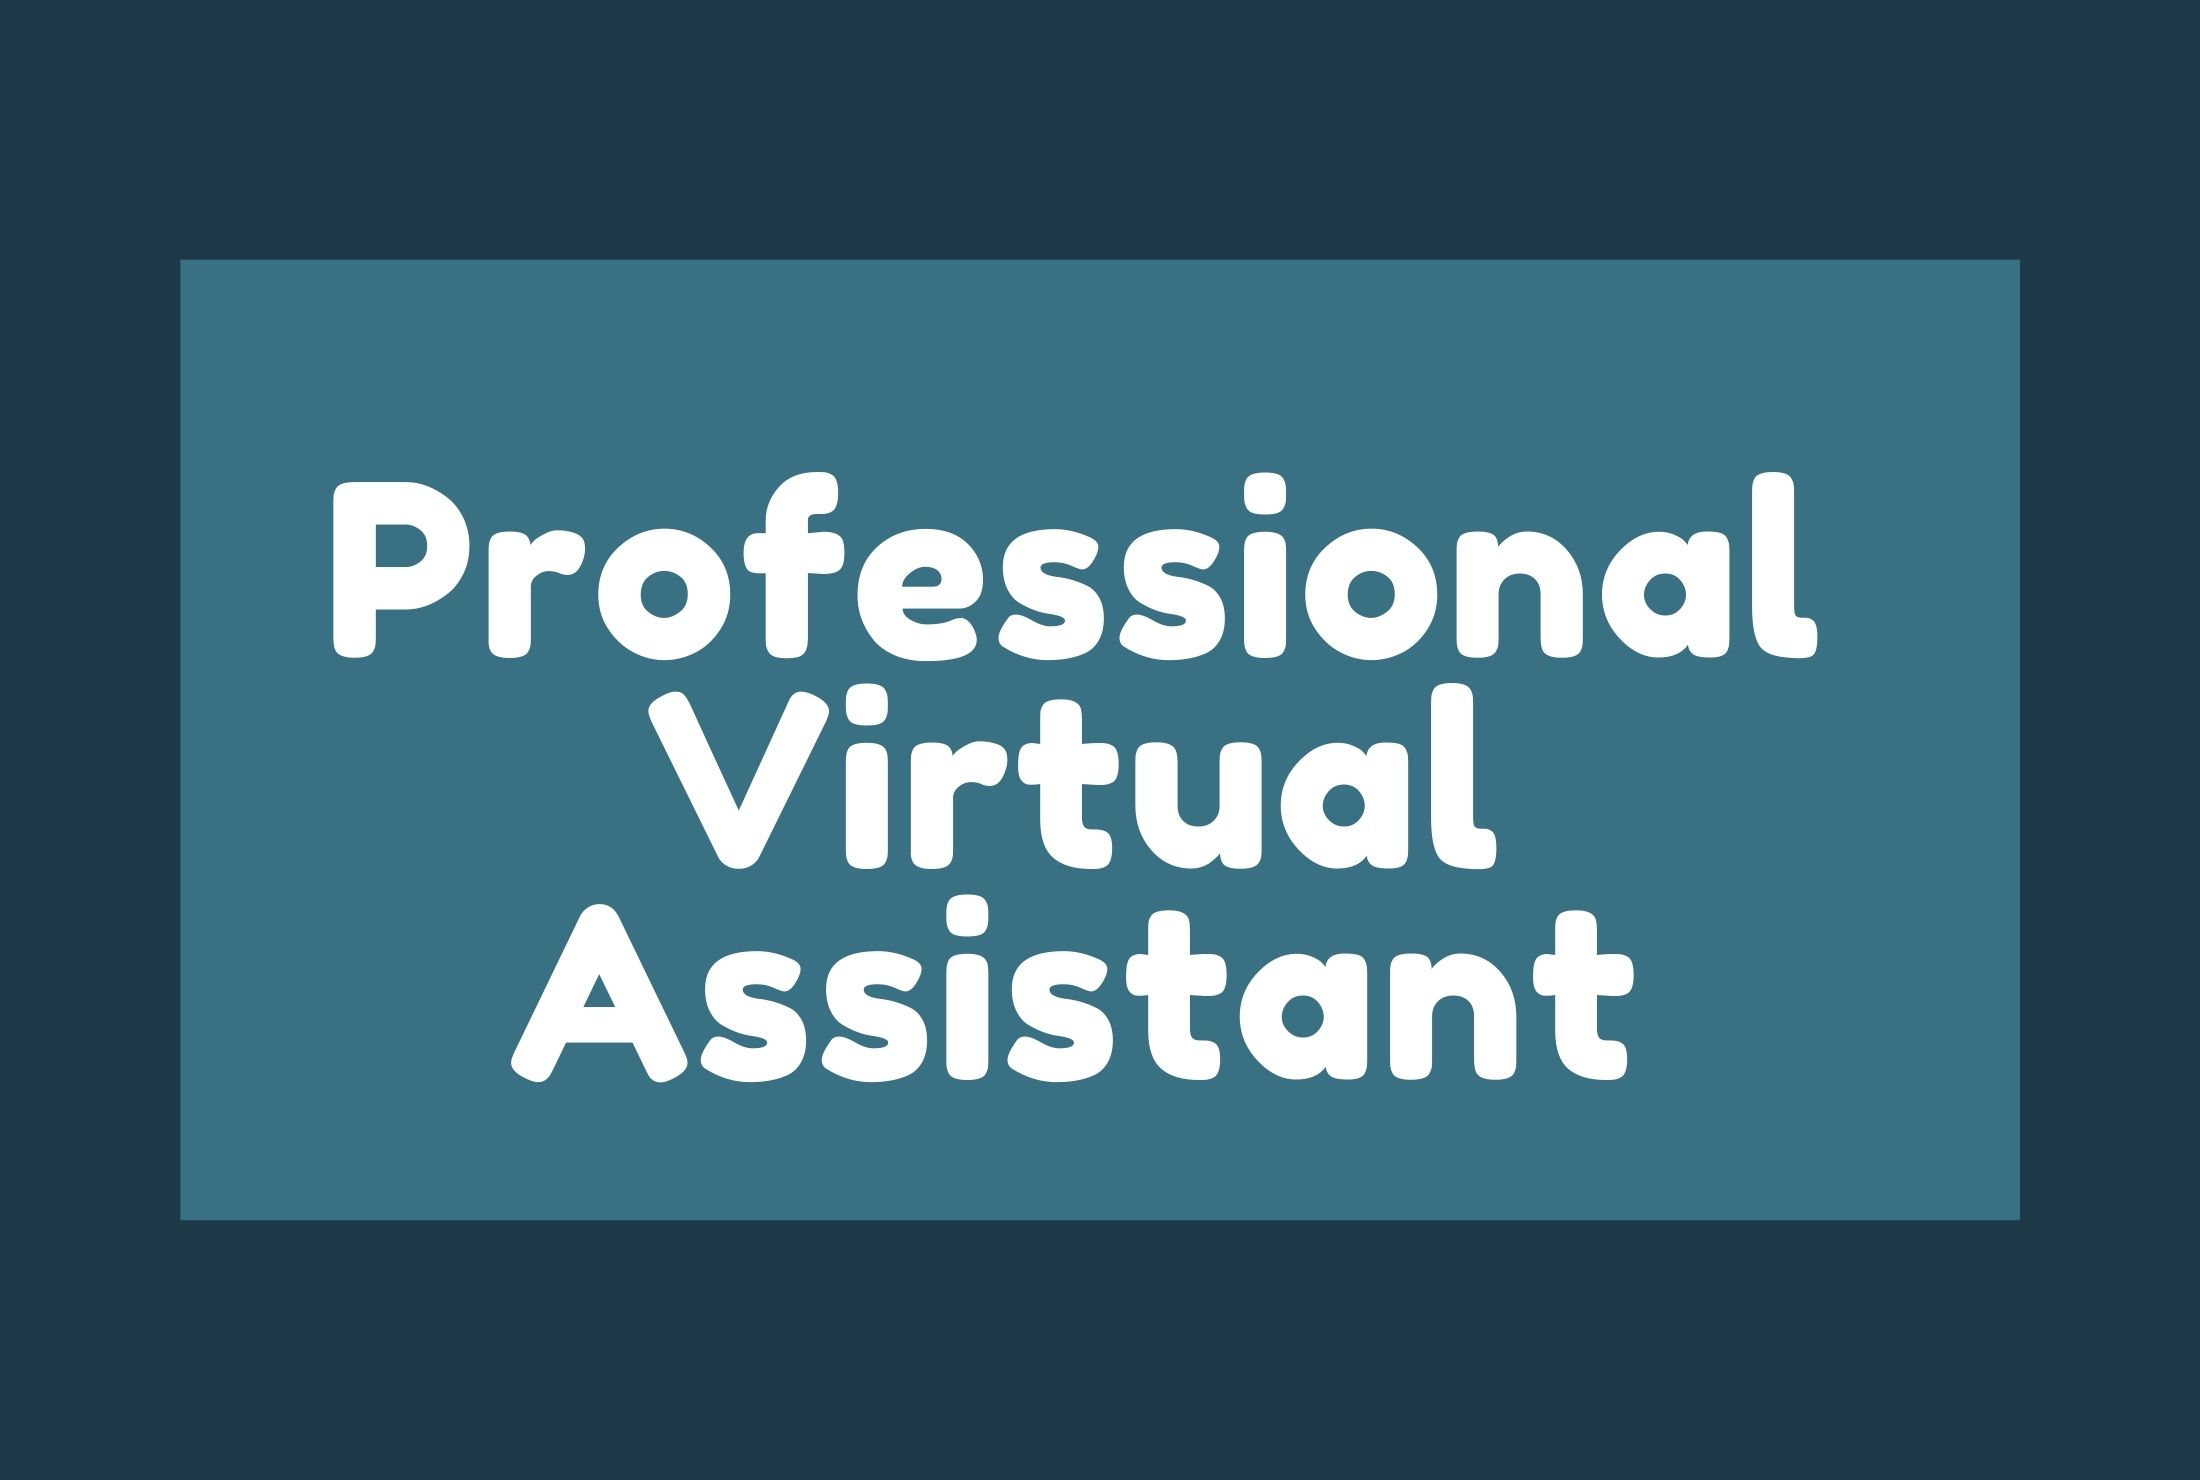 I will be your Professional Virtual Assistant and personal assistant